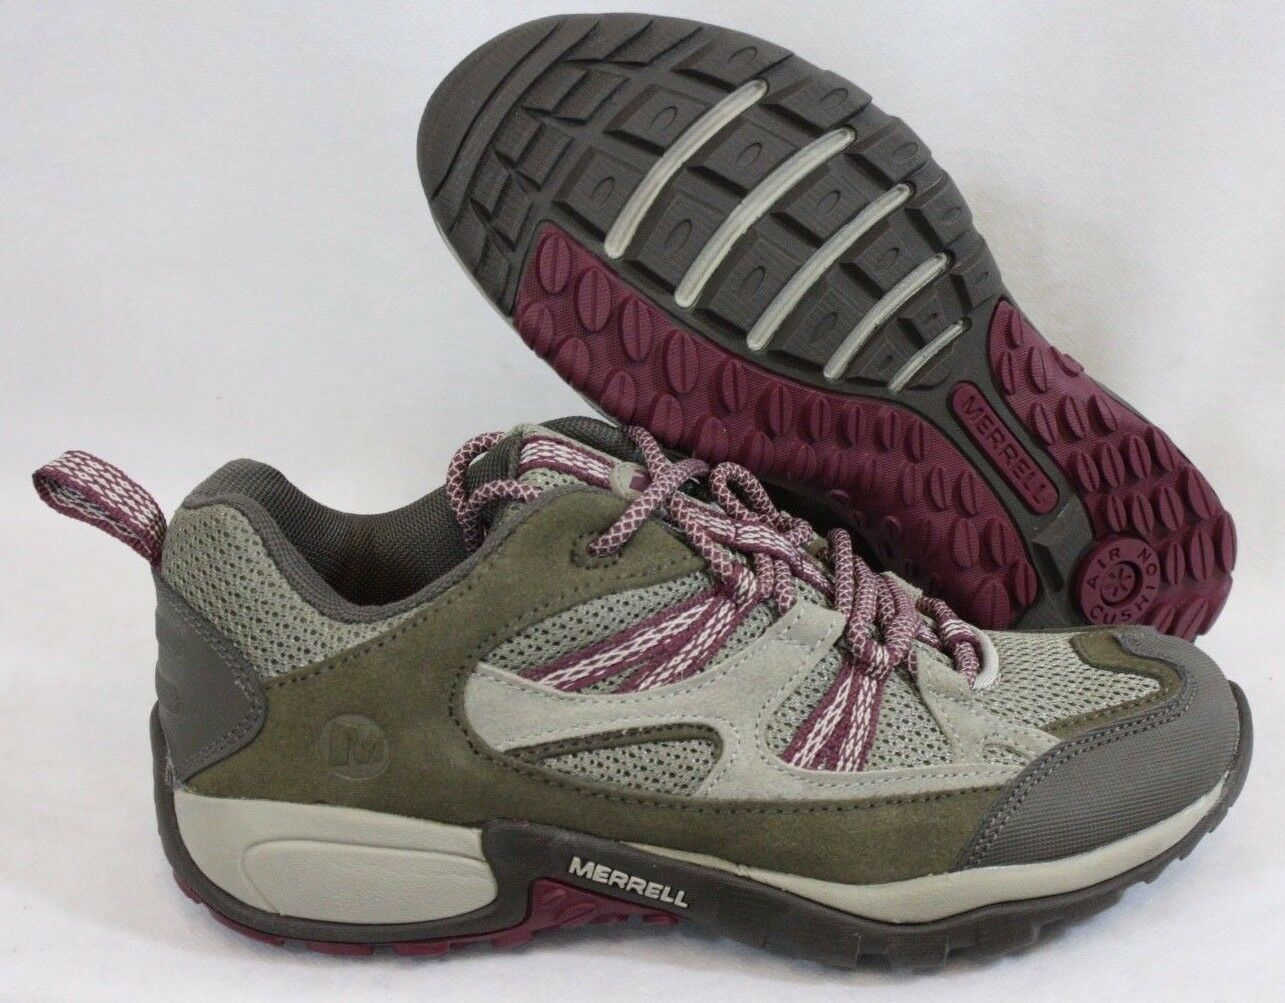 NEU Damenschuhe MERRELL Soren Sport J169604C Tan Rose Purple Outdoor Sneakers Schuhes